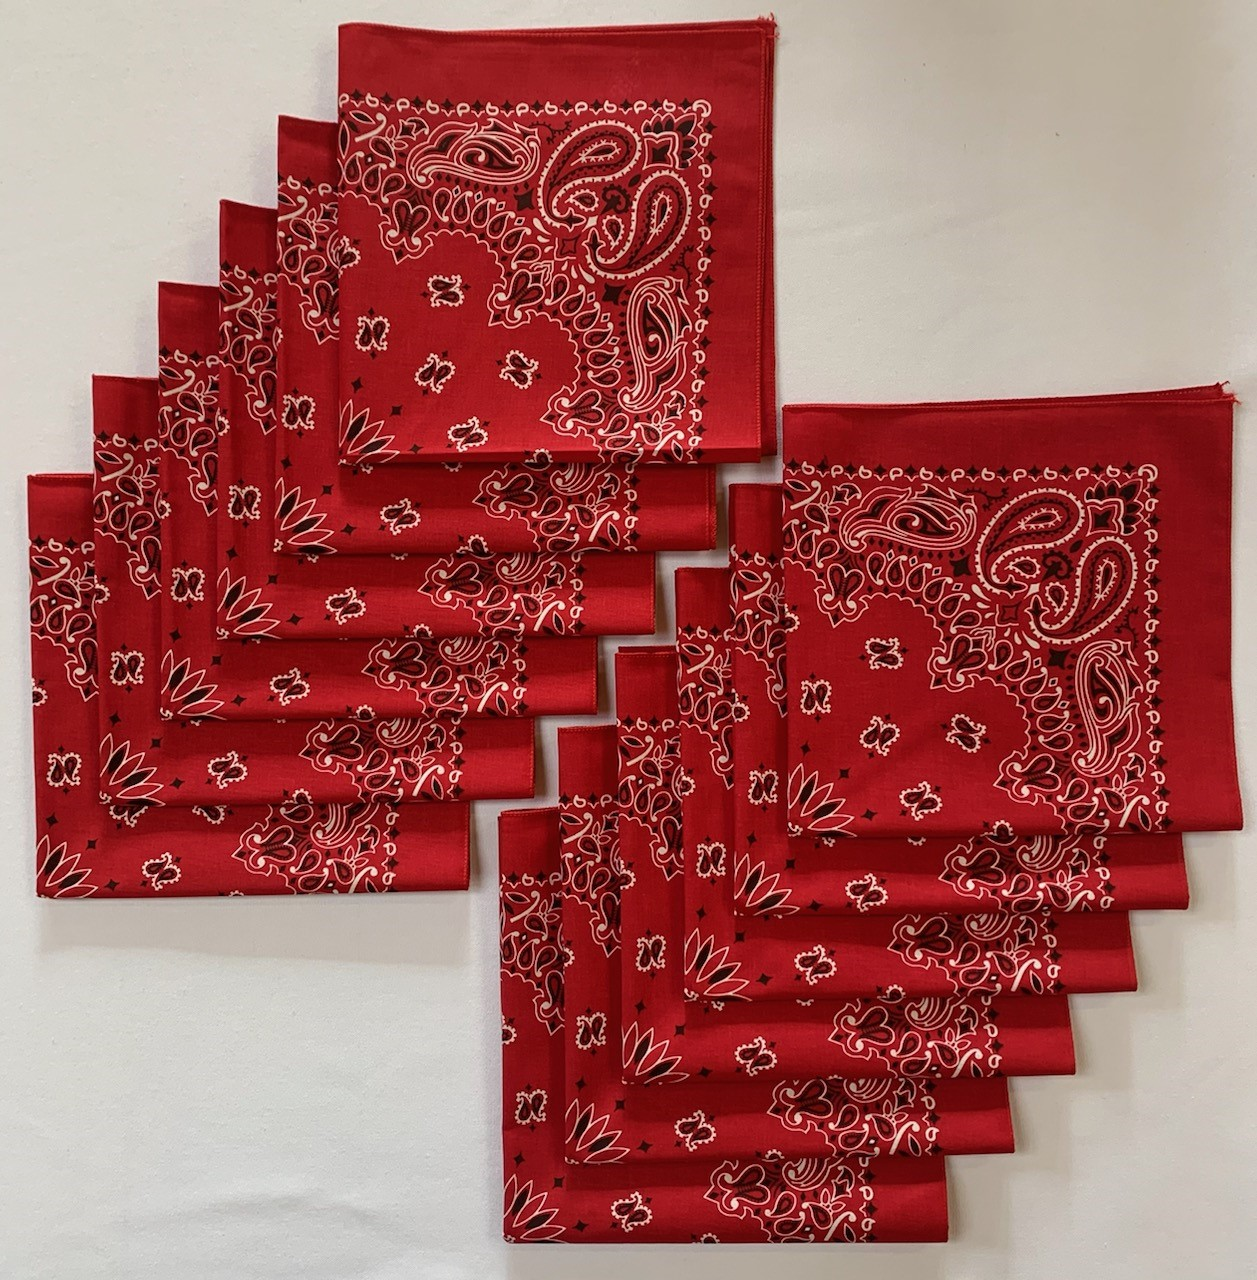 "Made in the USA Red Paisley Bandanas 12 Pk, 22"" x 22"" Cotton"